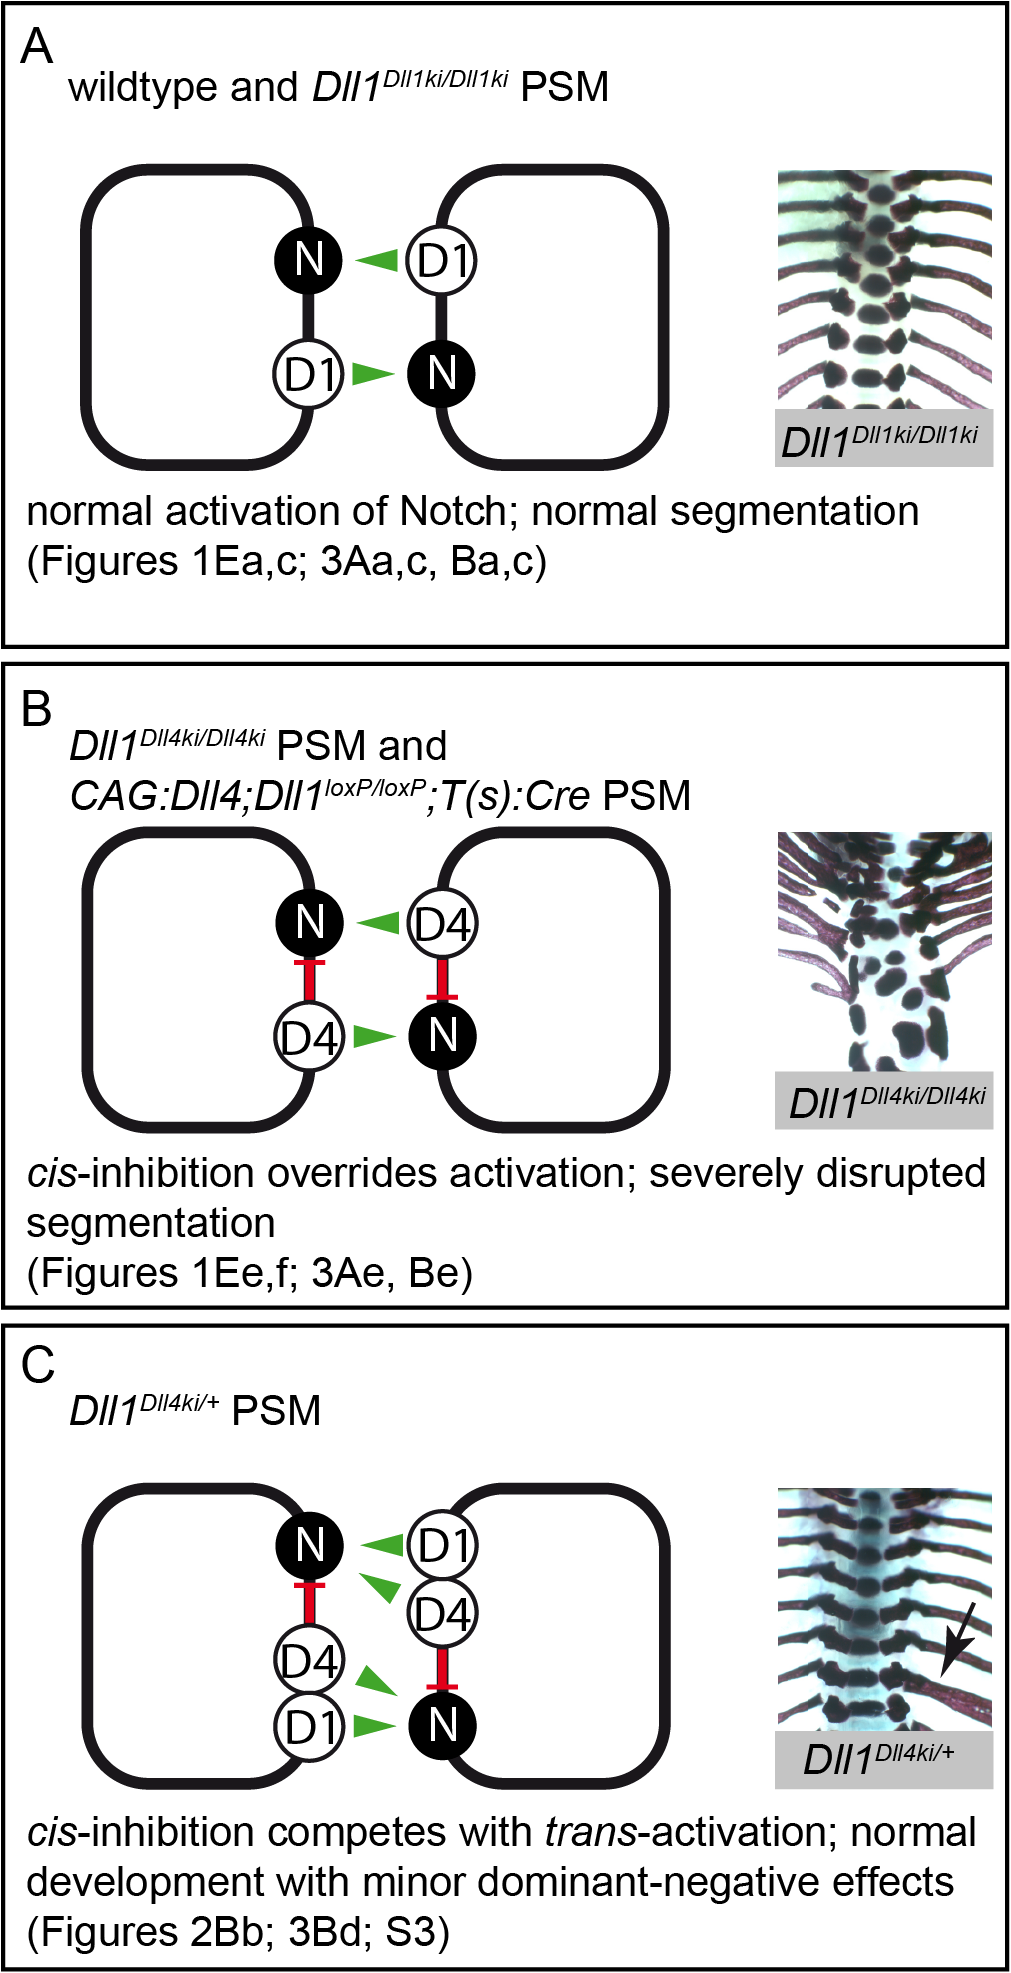 Model of Notch signalling in the PSM triggered by DLL1 and ectopic DLL4.